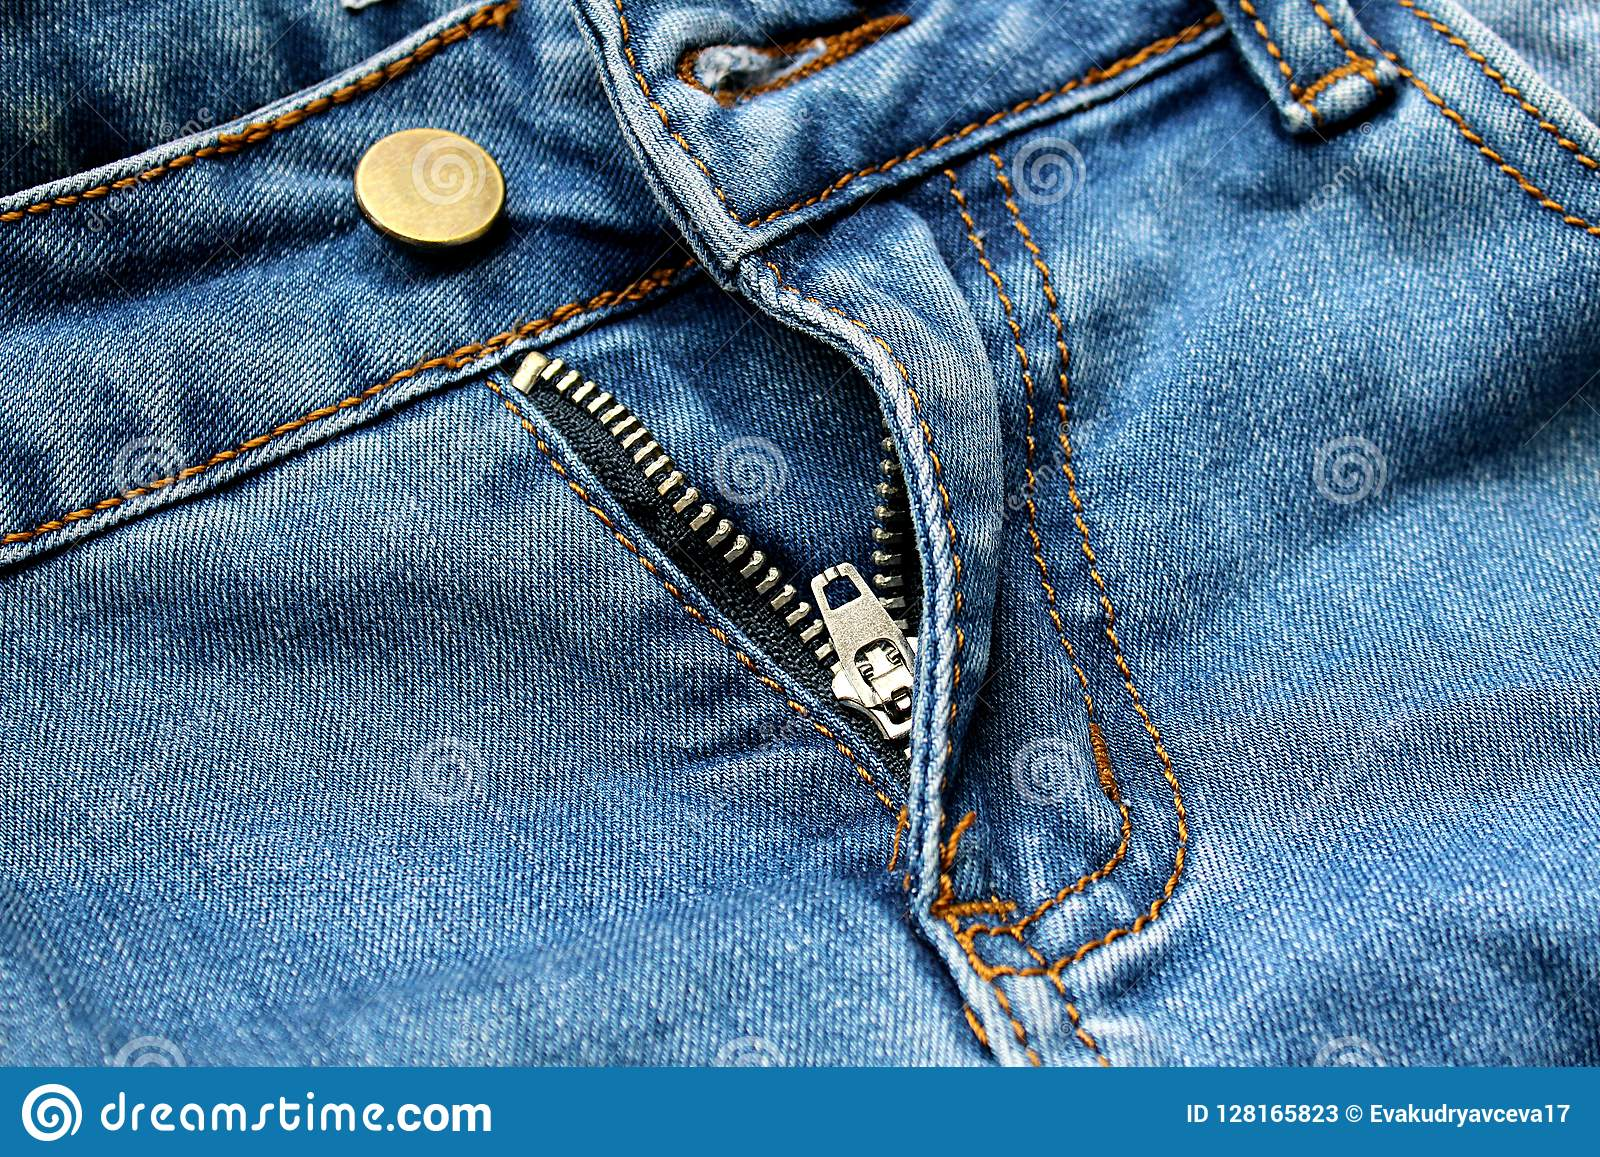 Zipper Pants Jeans Stock Image Image Of Cloth Fasten 128165823